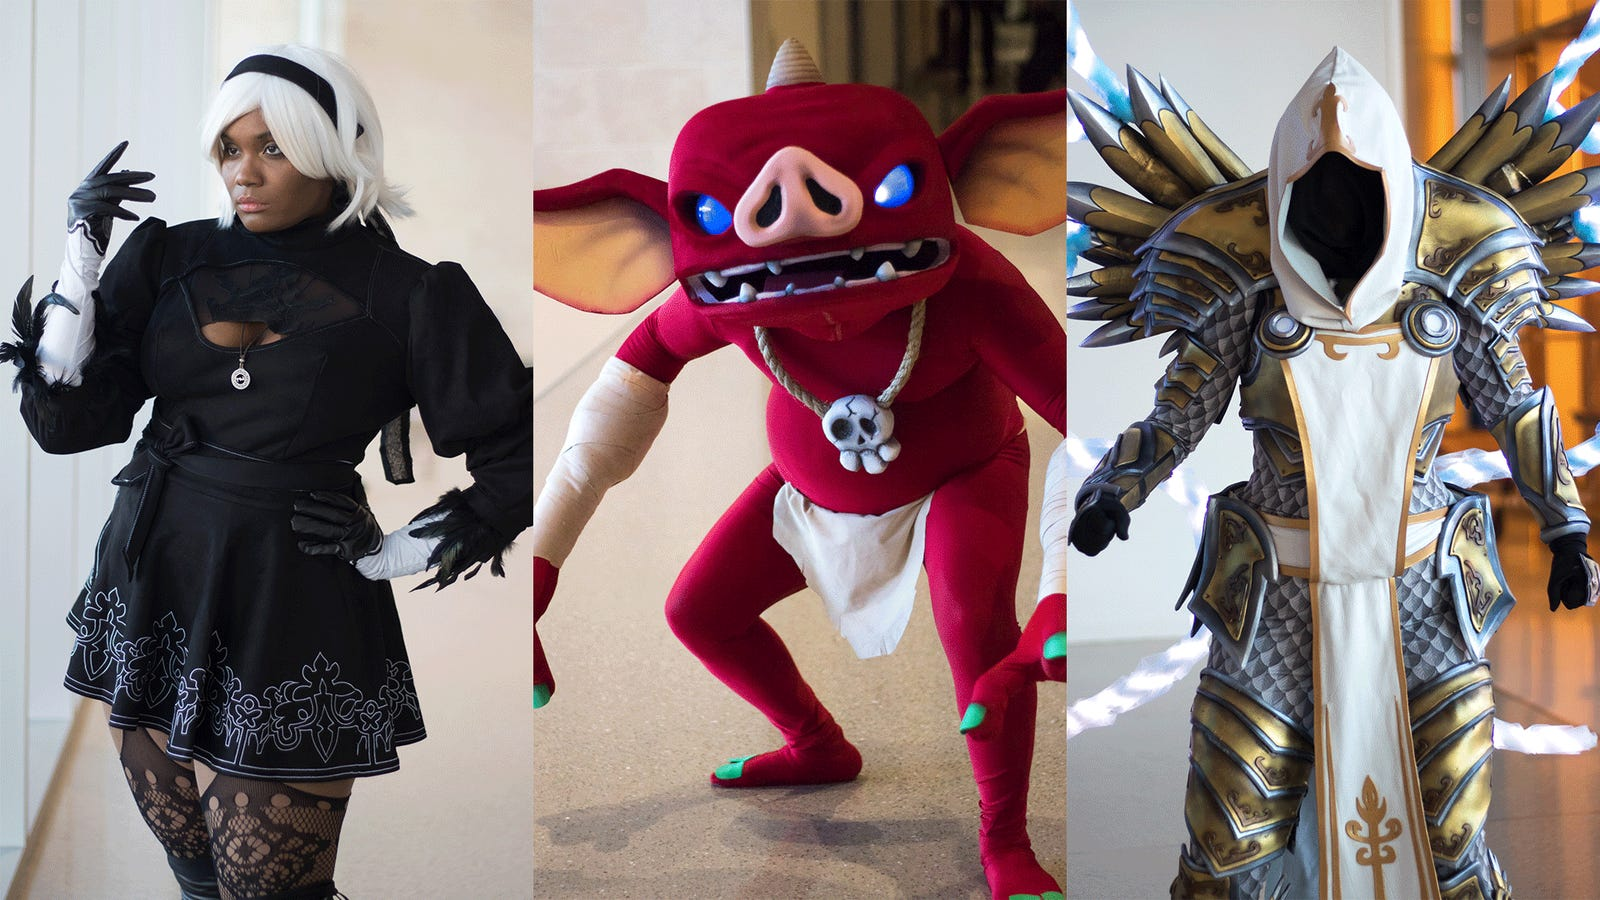 Some Of Our Favorite Cosplay From PAX South 2019